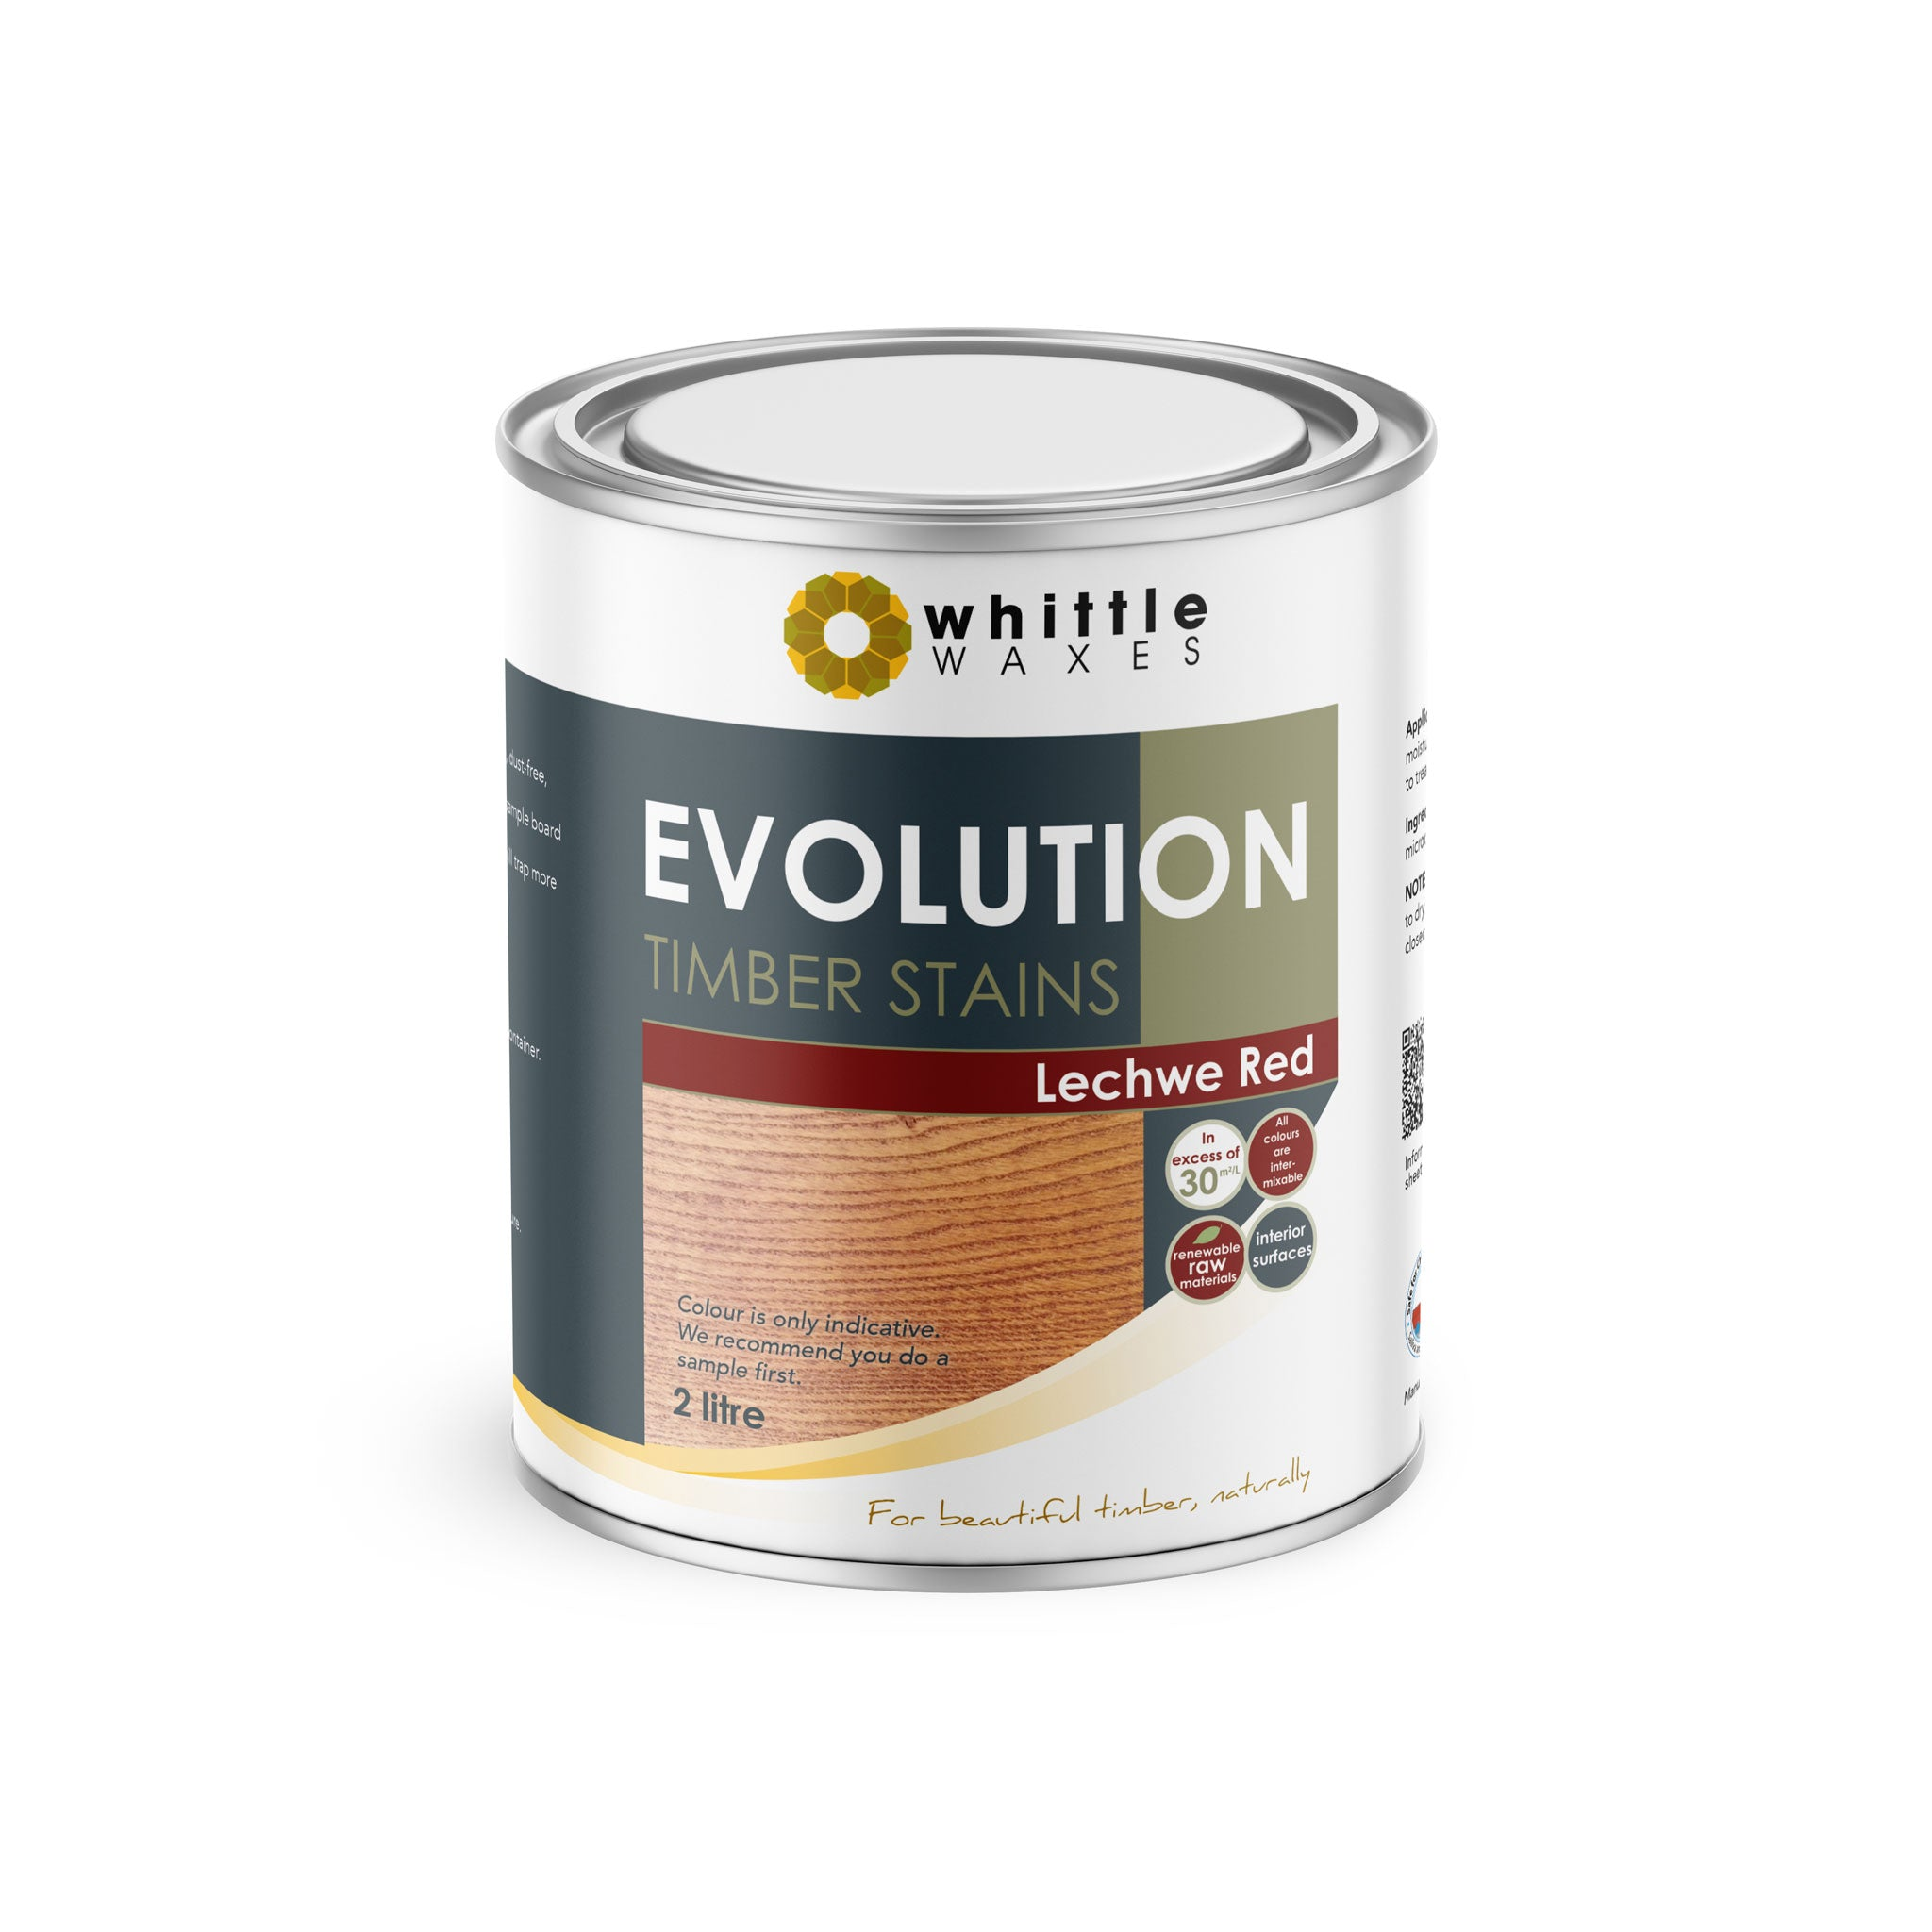 Whittle Waxes Evolution Colours (Lechwe Red) - quality timber stain - 2 Litre